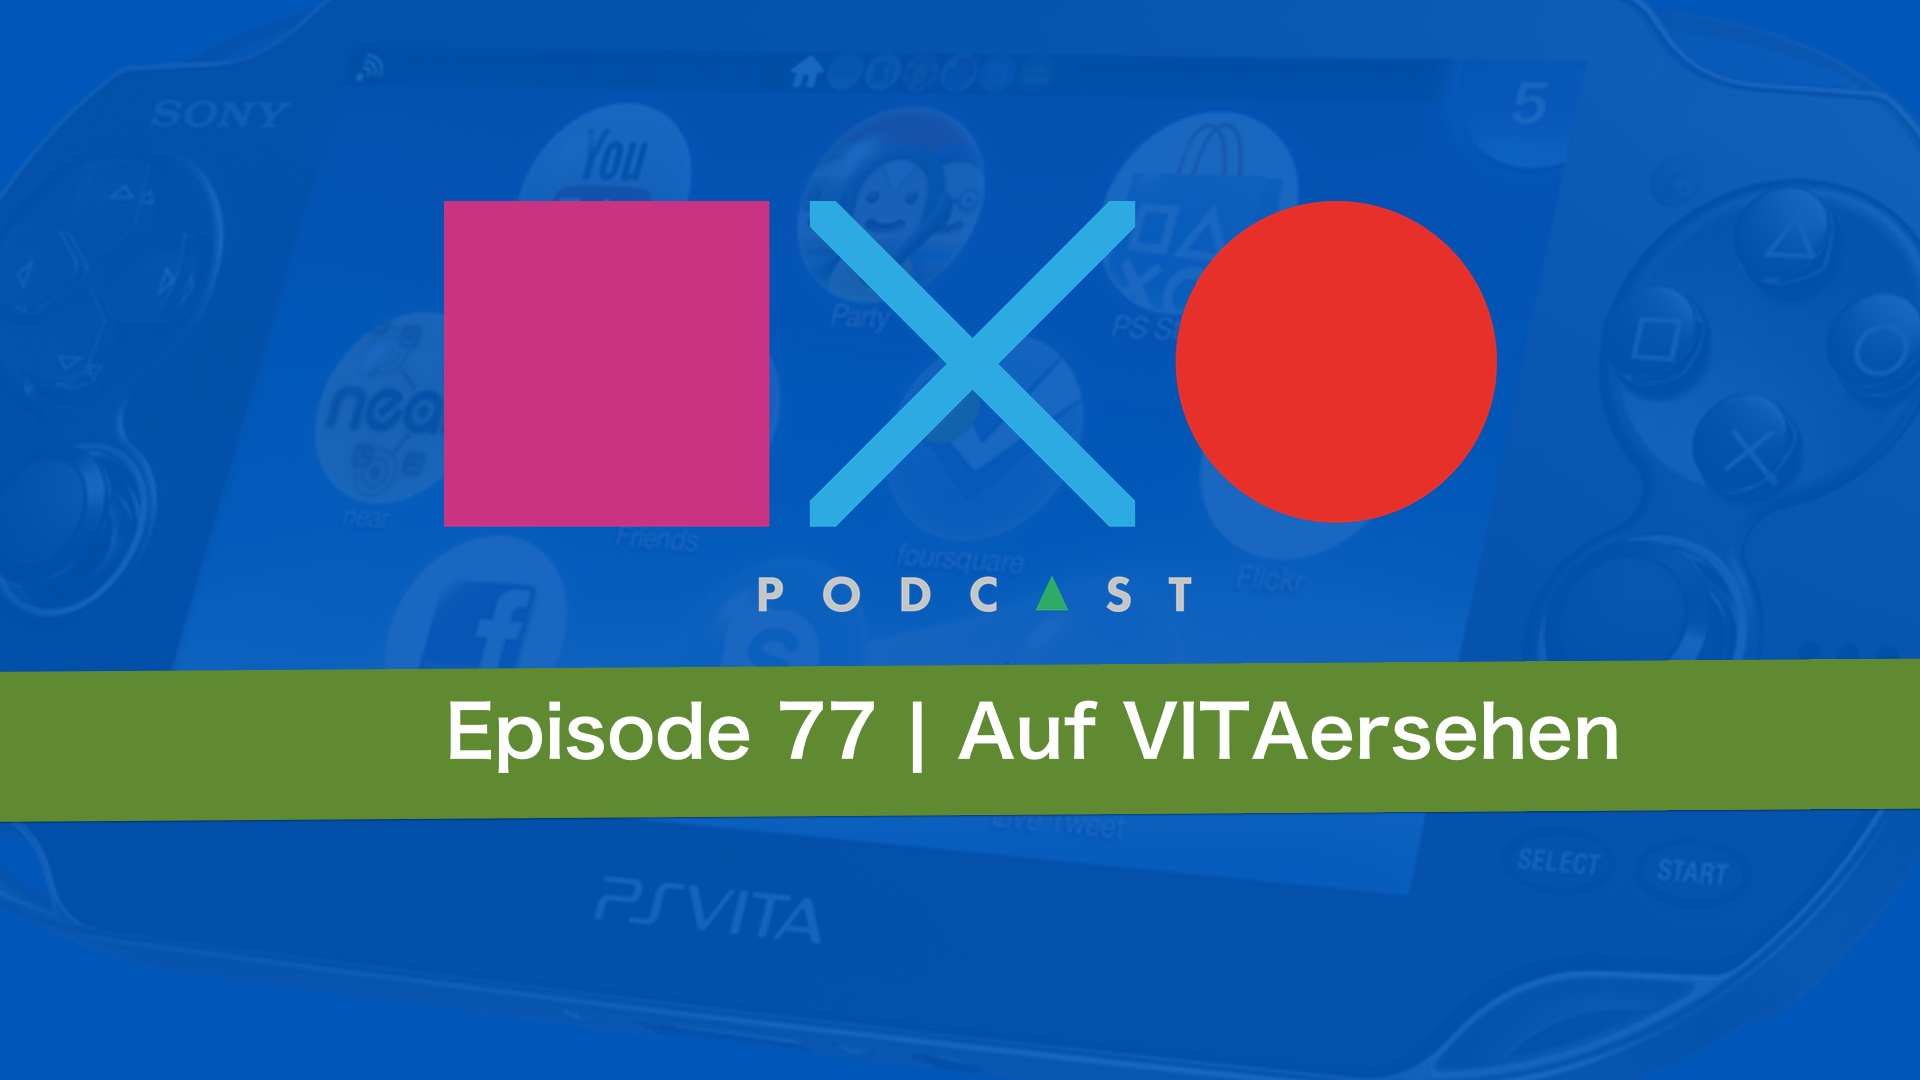 SquareXO | PlayStation Podcast | Episode 77 – Auf VITAersehen